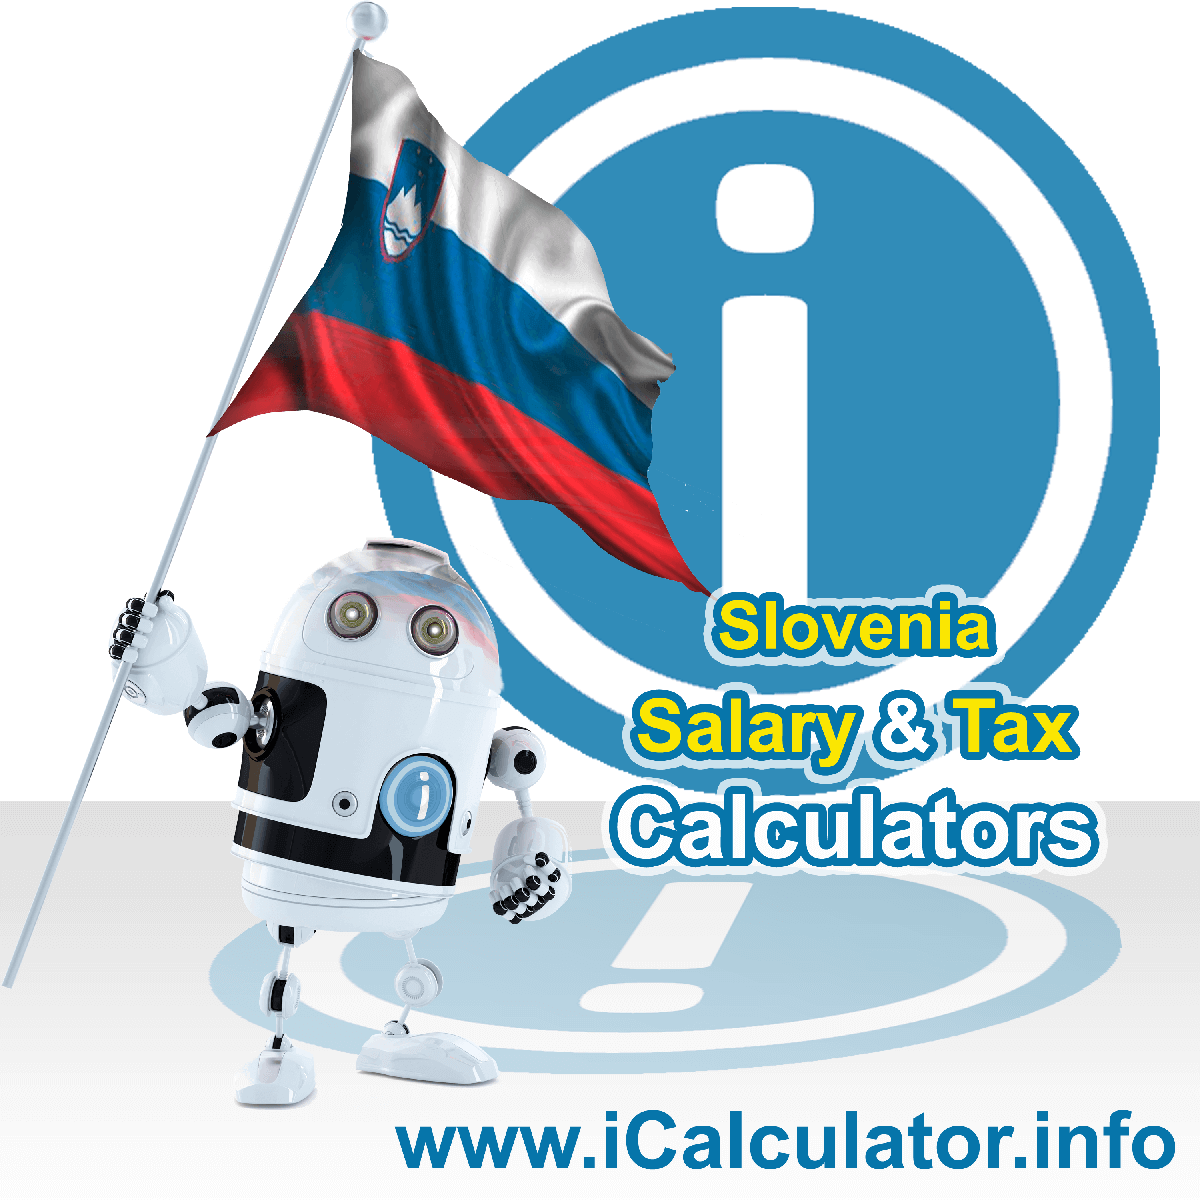 Slovenia Tax Calculator. This image shows the Slovenia flag and information relating to the tax formula for the Slovenia Salary Calculator